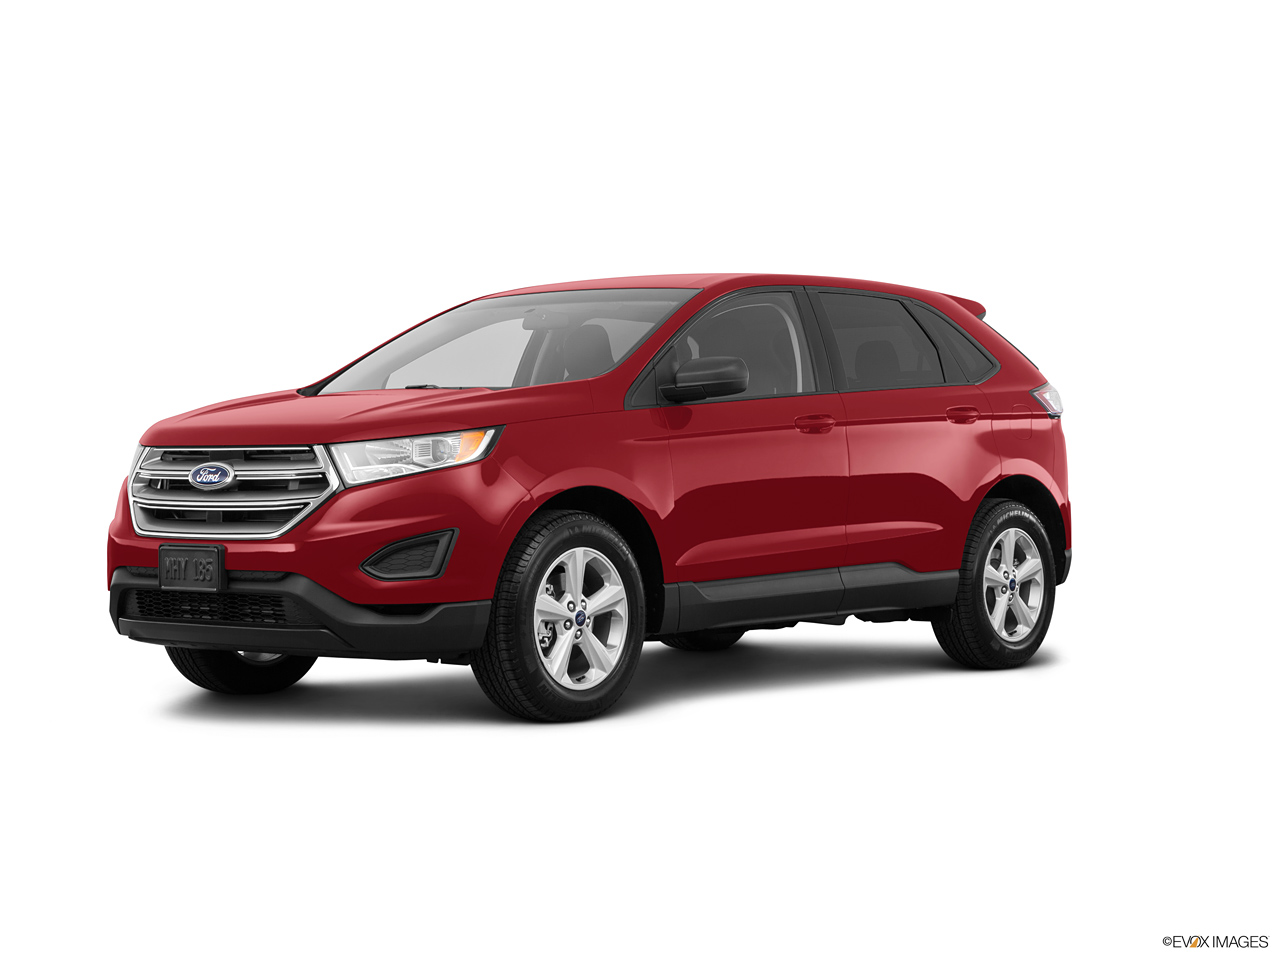 Image Result For Ford Edge Kuwait